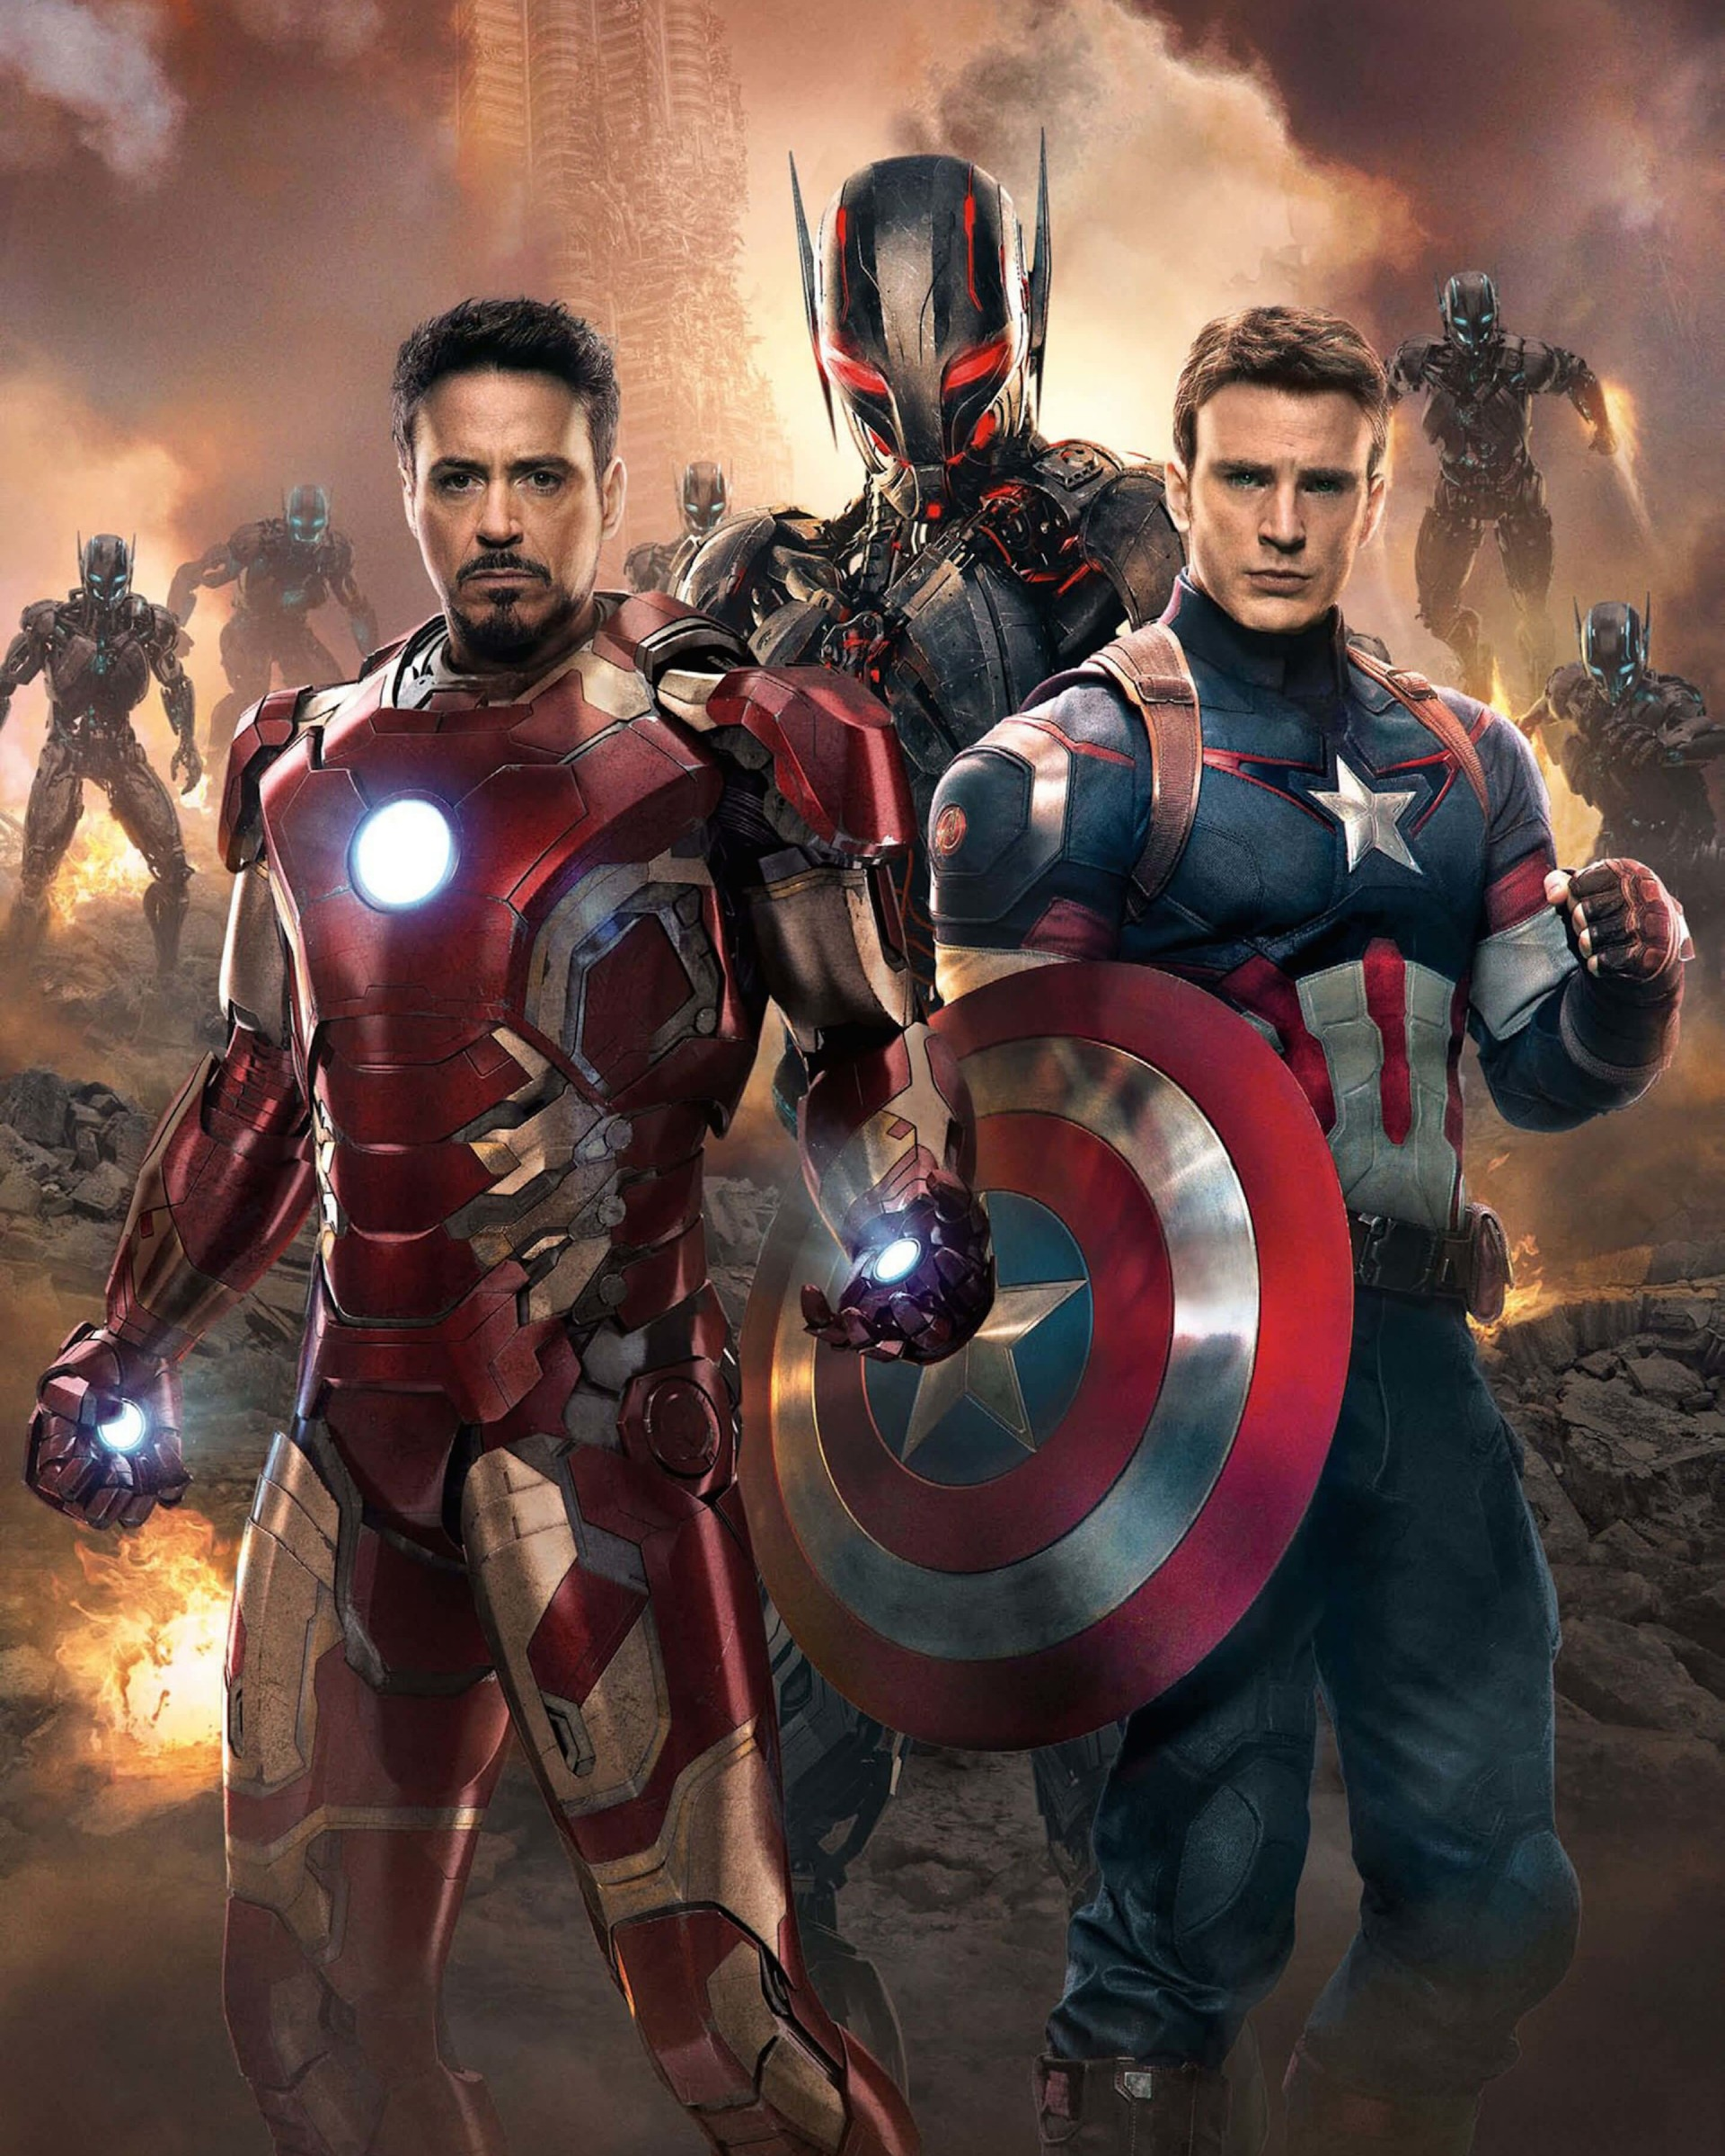 The Avengers: Age of Ultron - Iron Man and Captain America Wallpaper for Google Nexus 7